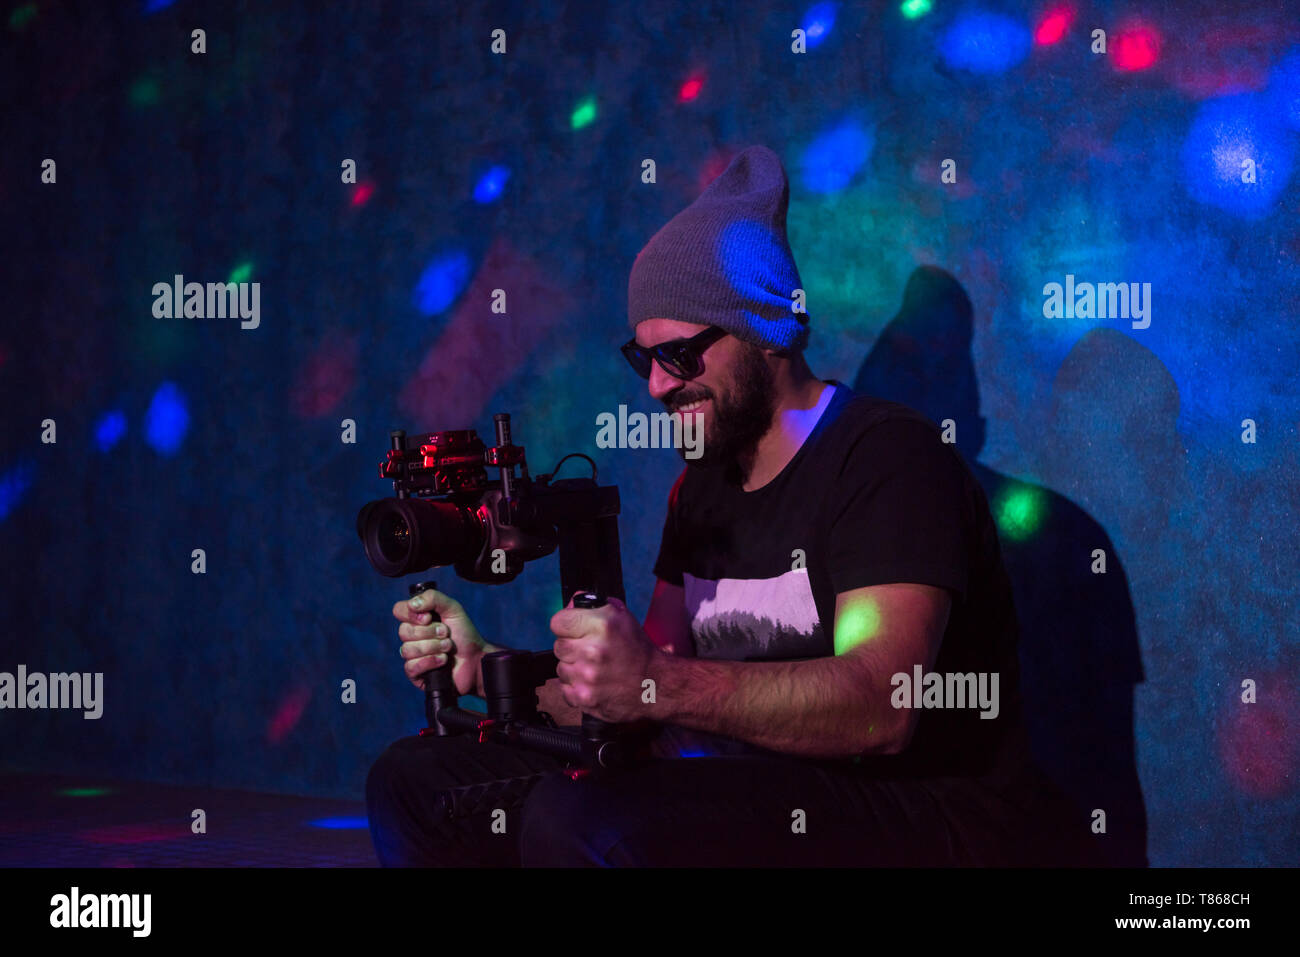 young videographer with gimball video slr working in kids neon disco party - Stock Image